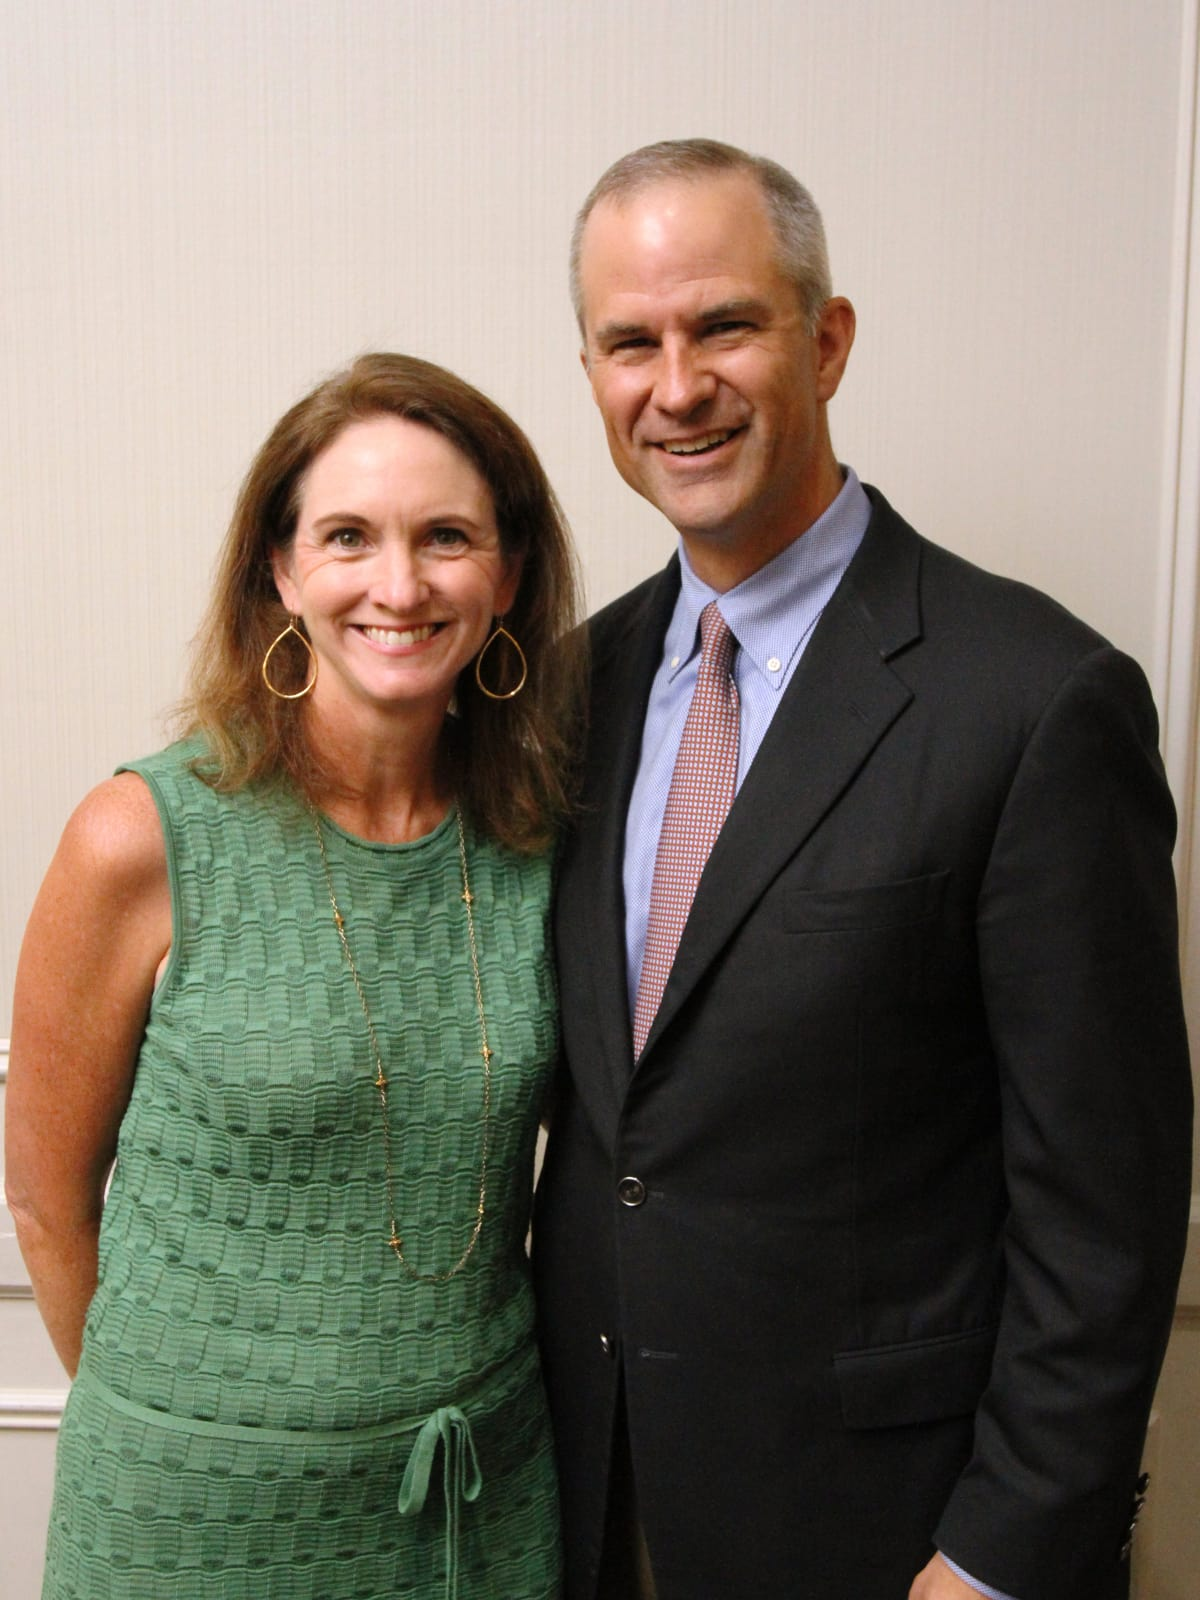 Kitty and Steve Oldham at Menninger Clinic luncheon